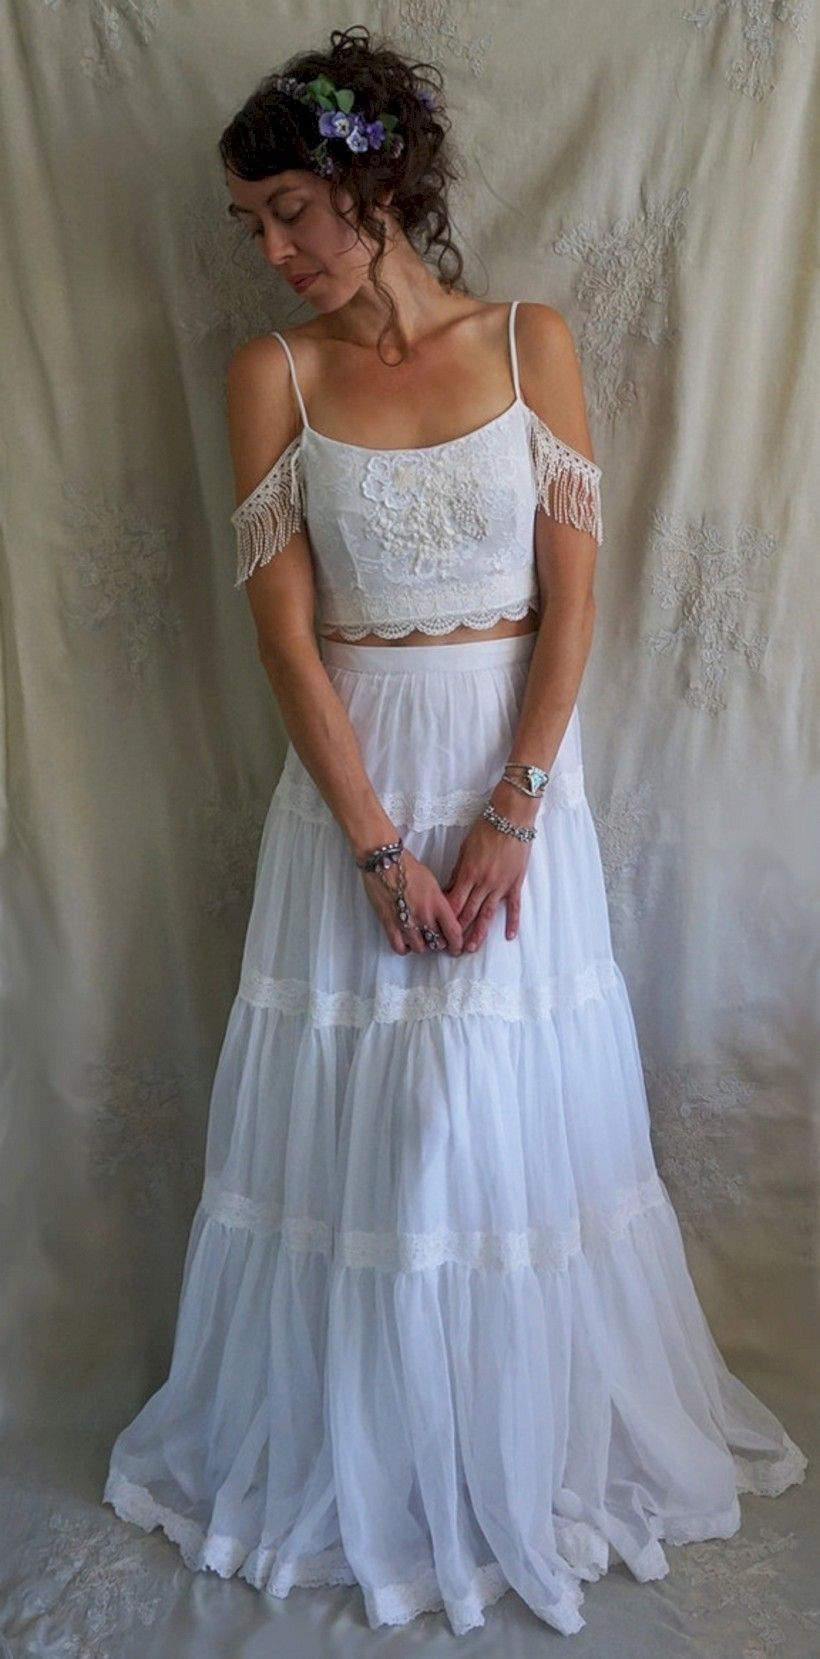 Cream colored vintage wedding dresses   Beautiful And Sensual With Two Piece Lace Wedding Dresses Ideas